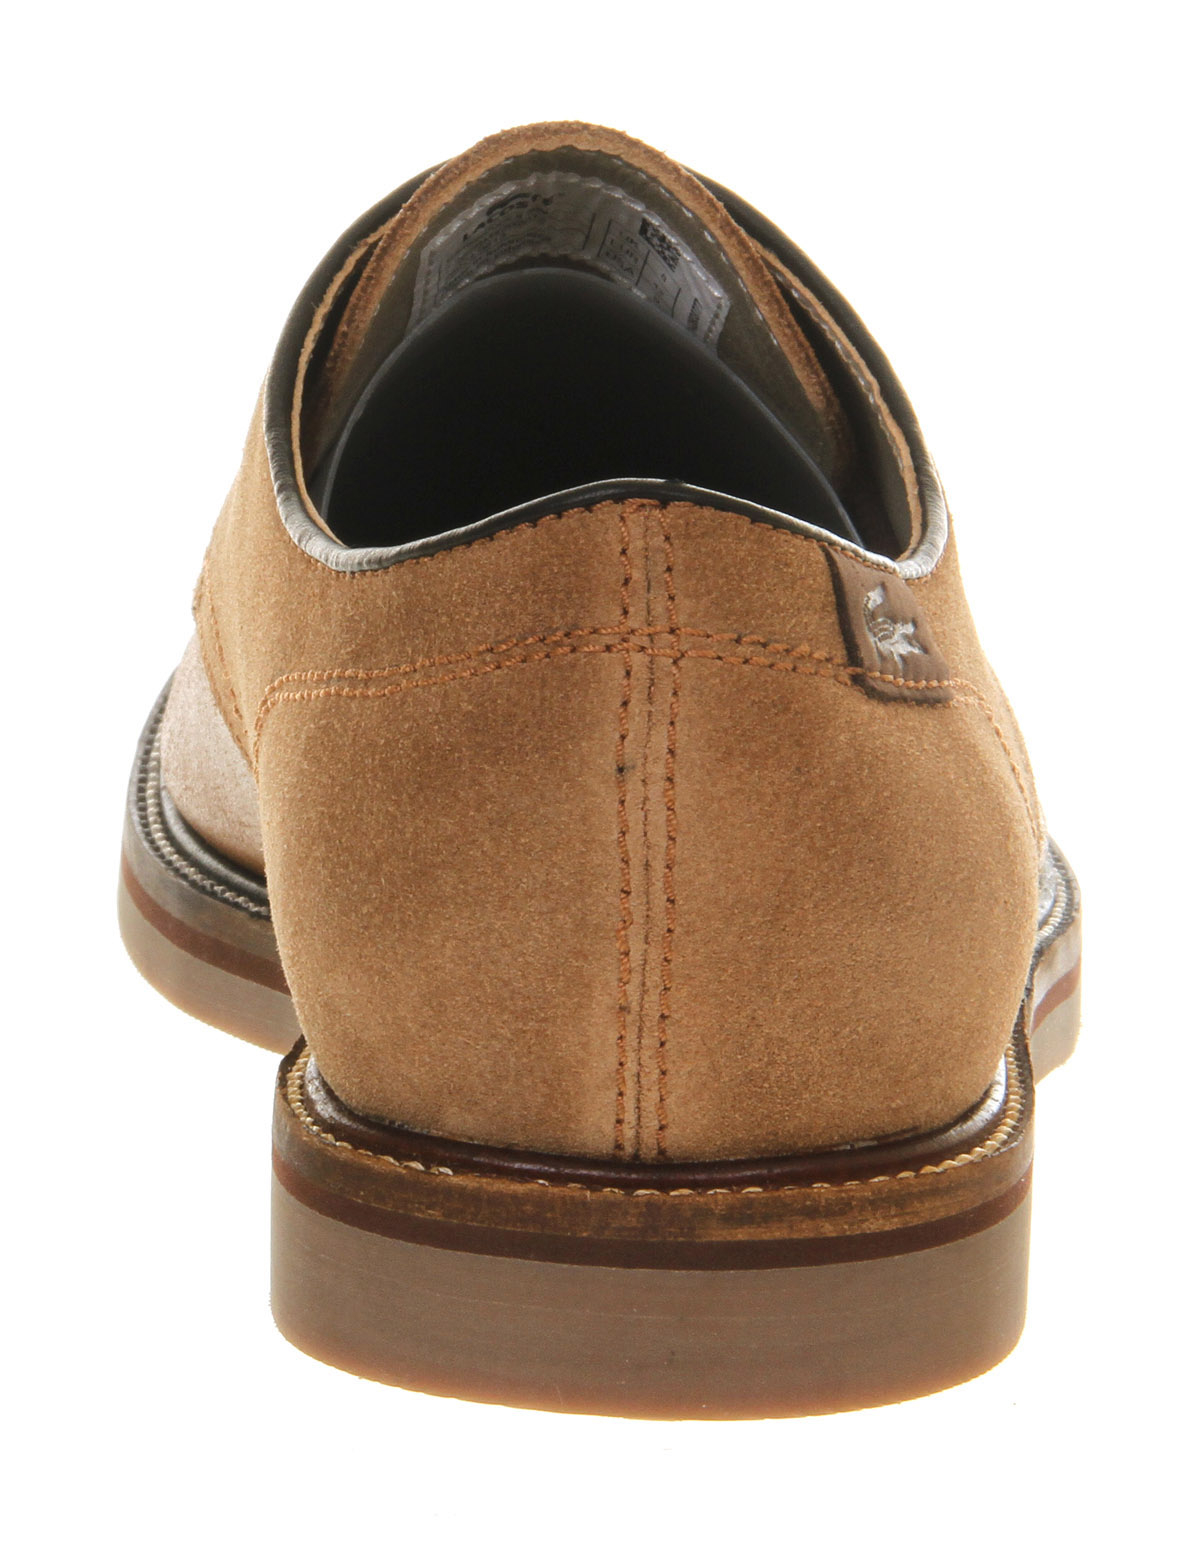 196da34dded2c6 Lacoste Sherbrooke 12 Mens Shoes Mens Footwear Shop Mens Footwear COLOUR-tan